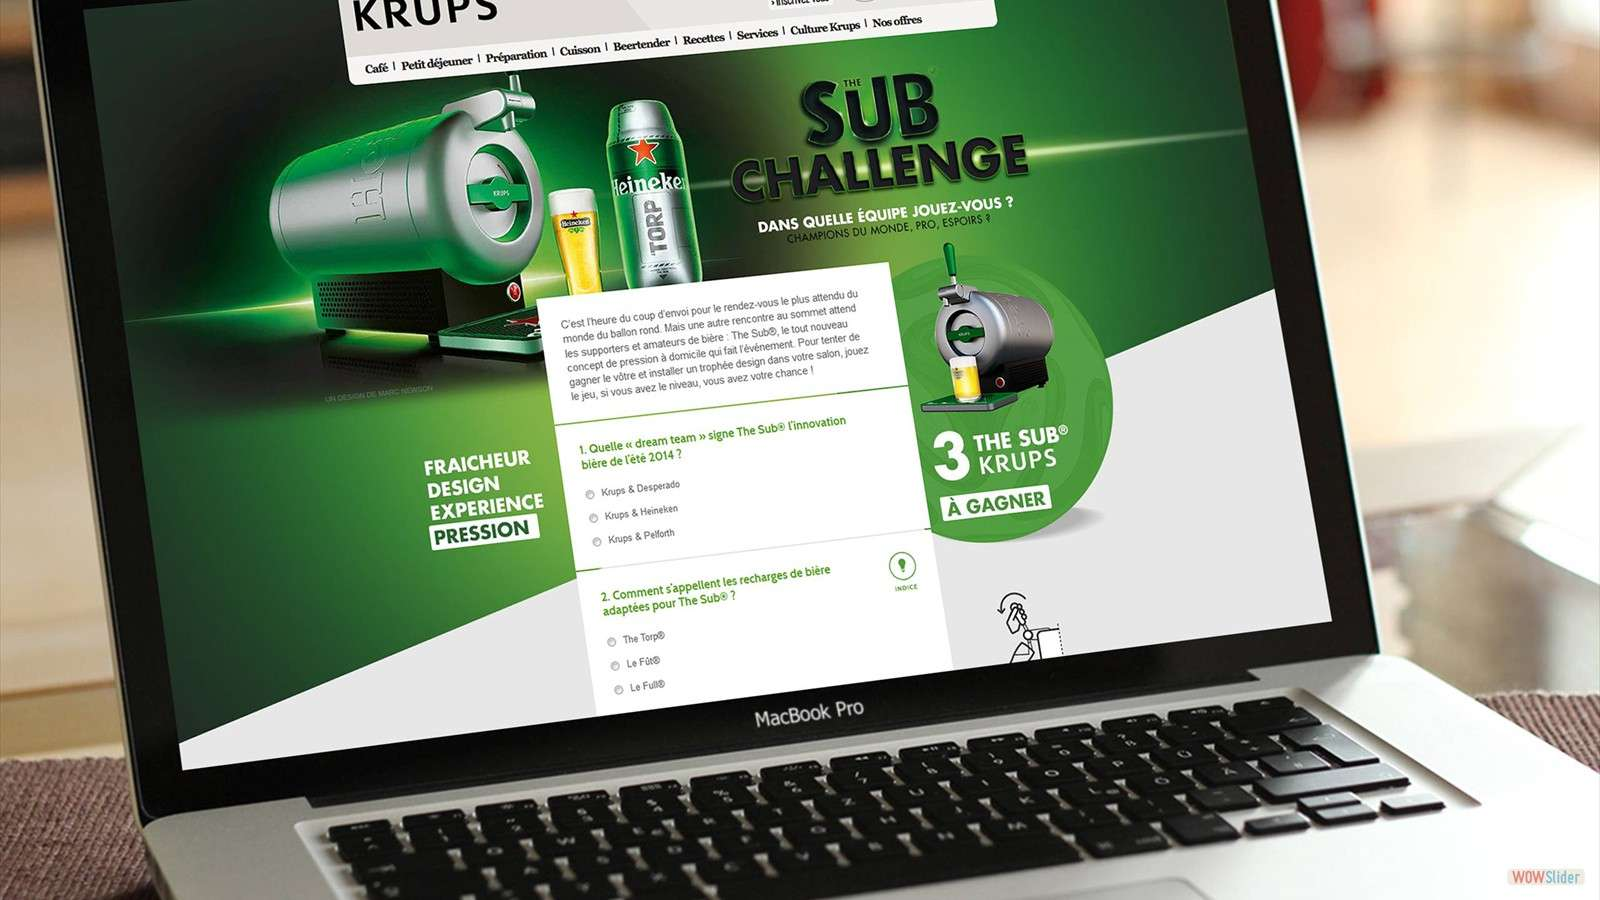 Krups - The Sub Challenge